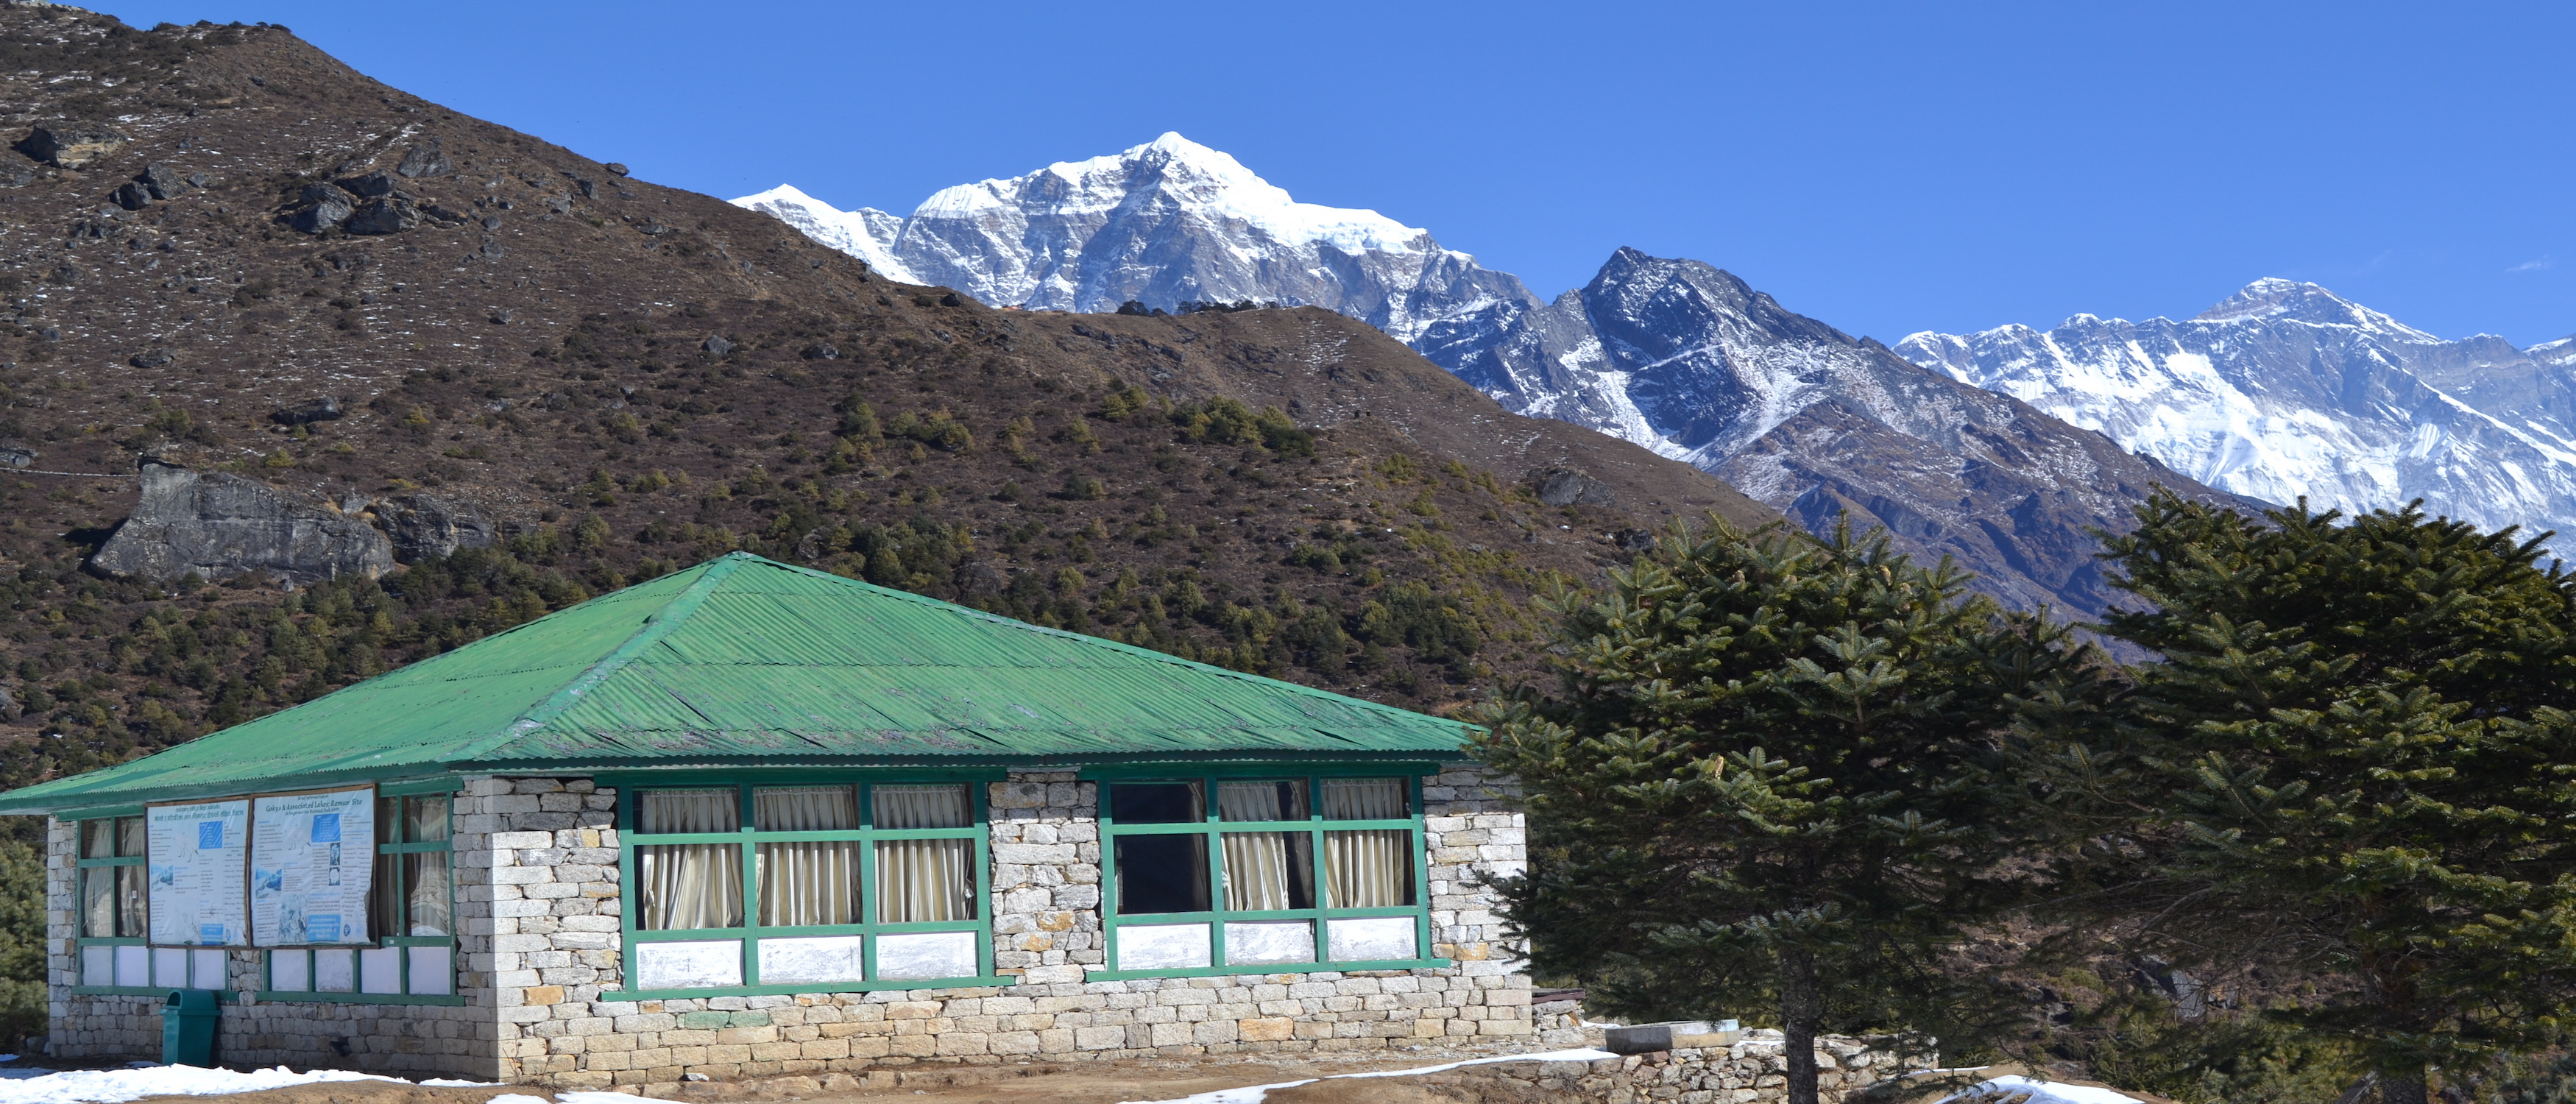 Cost for the Mount Everest base camp trek